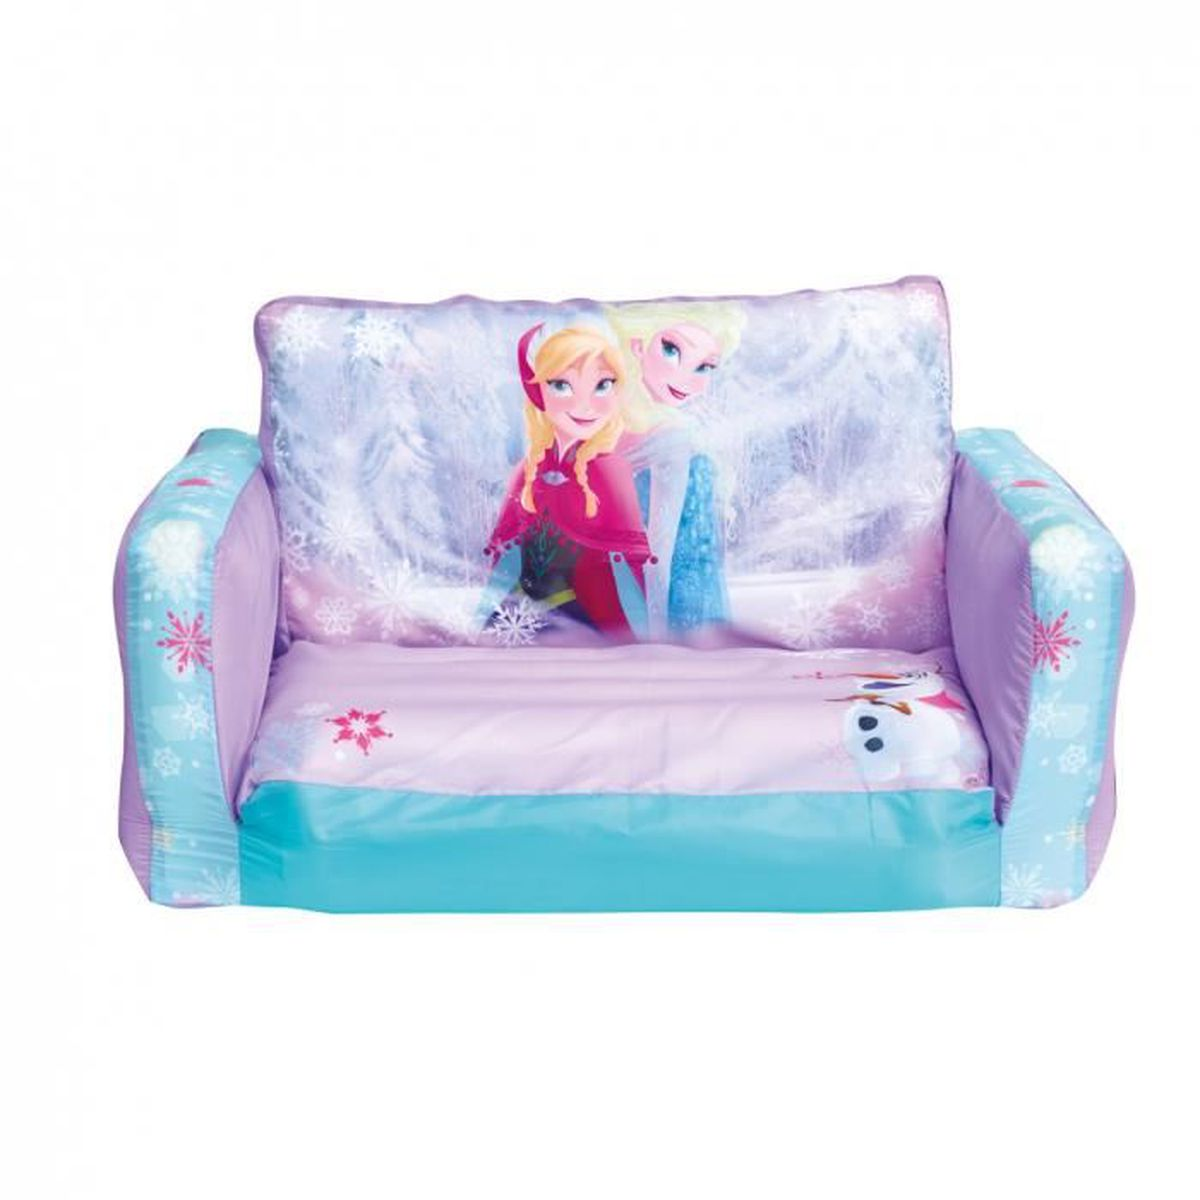 canap rose convertible gonflable assis allong anna et elsa reine des neiges disney achat. Black Bedroom Furniture Sets. Home Design Ideas